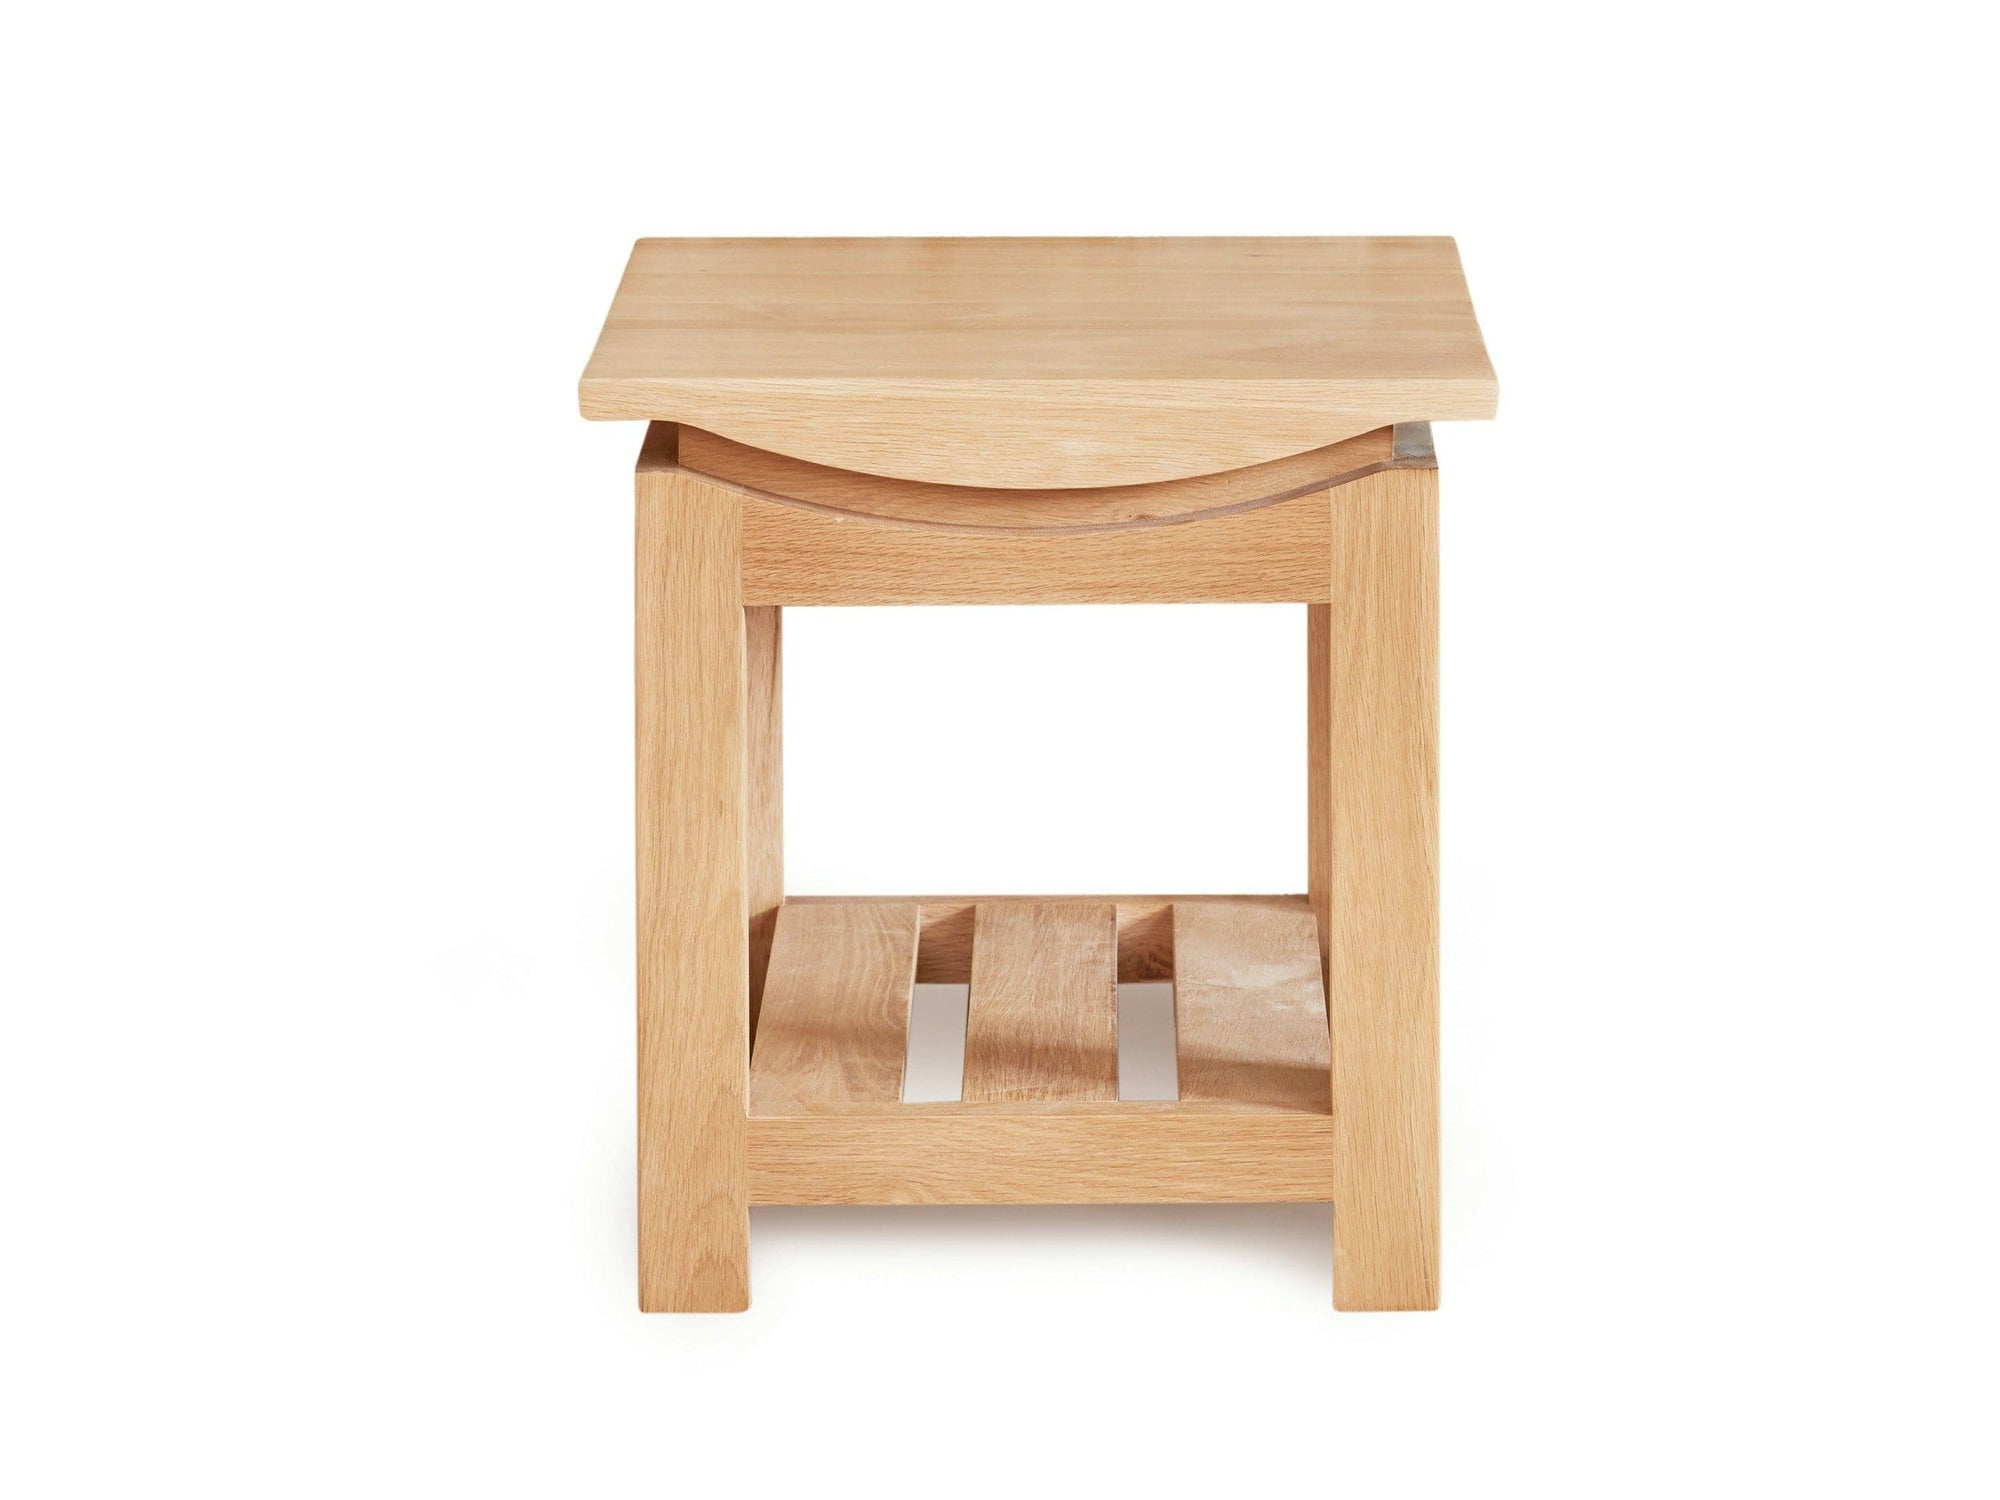 Allbrook light oak lamp table, featuring lower slatted shelf